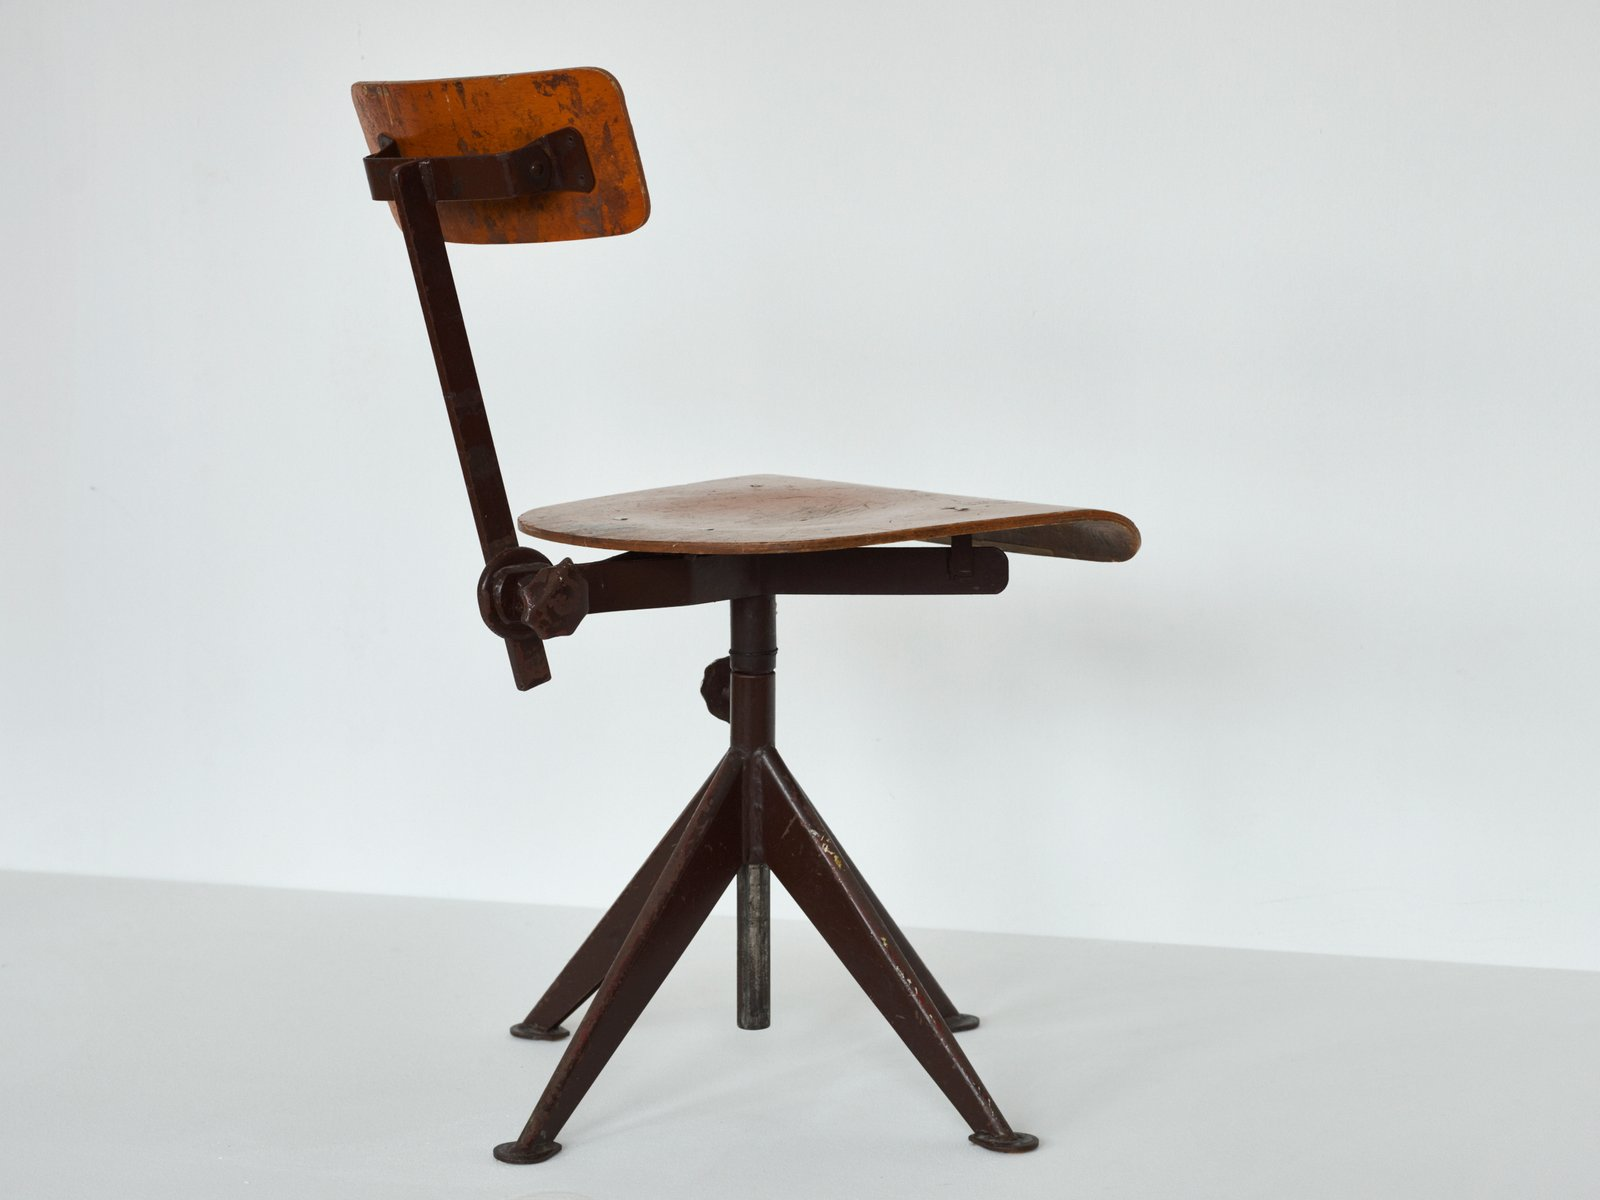 Vintage Swivel Work Chair By Jean Prouve For Sale At Pamono - Work chair